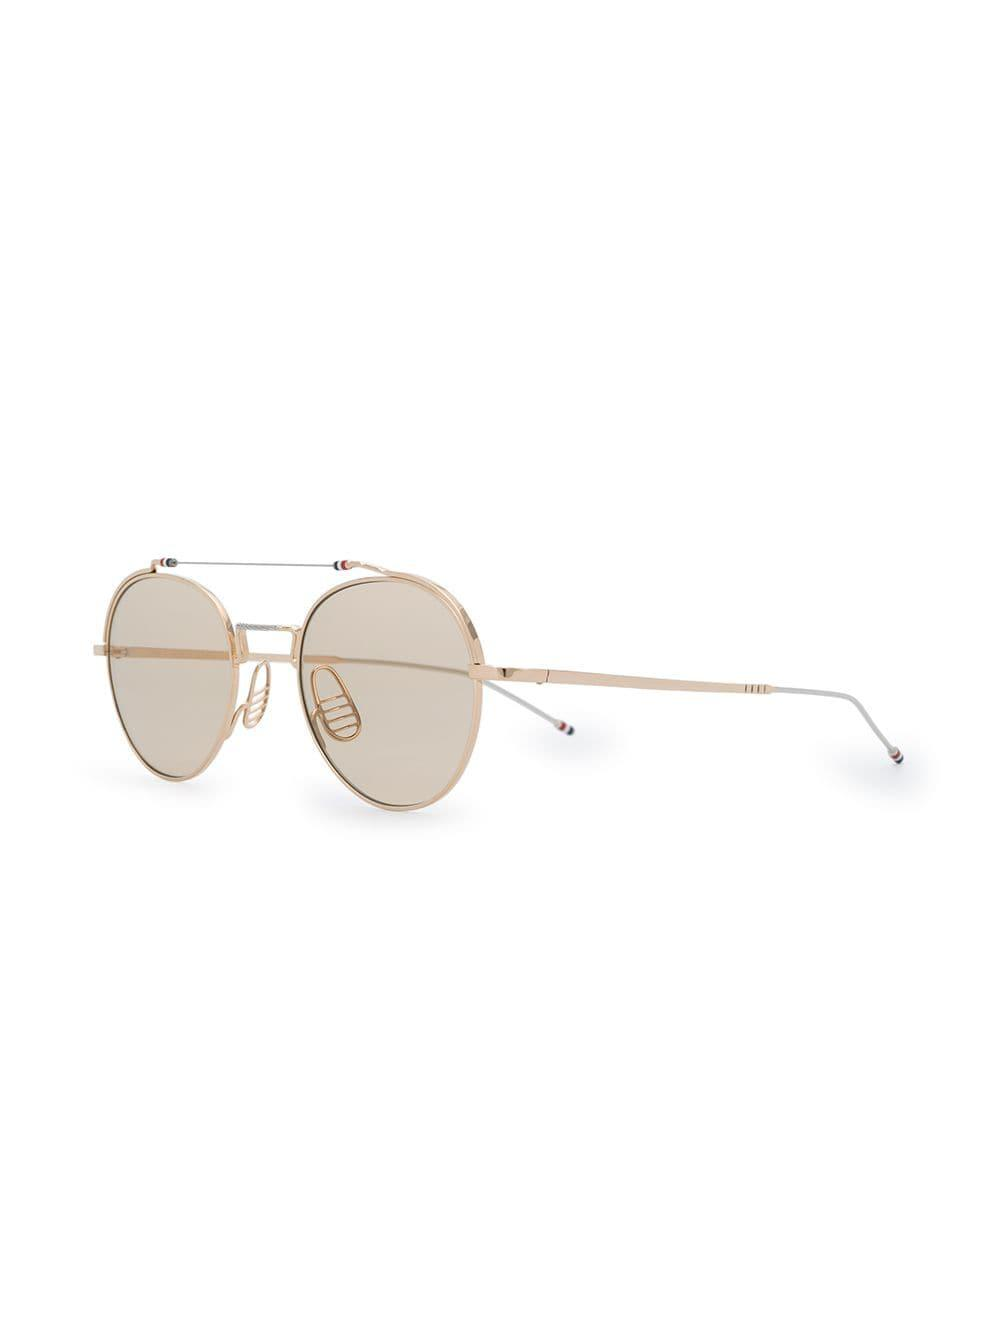 55bfe7c1c30e Lyst - Thom Browne Round Sunglasses in Metallic for Men - Save  0.1599999999999966%